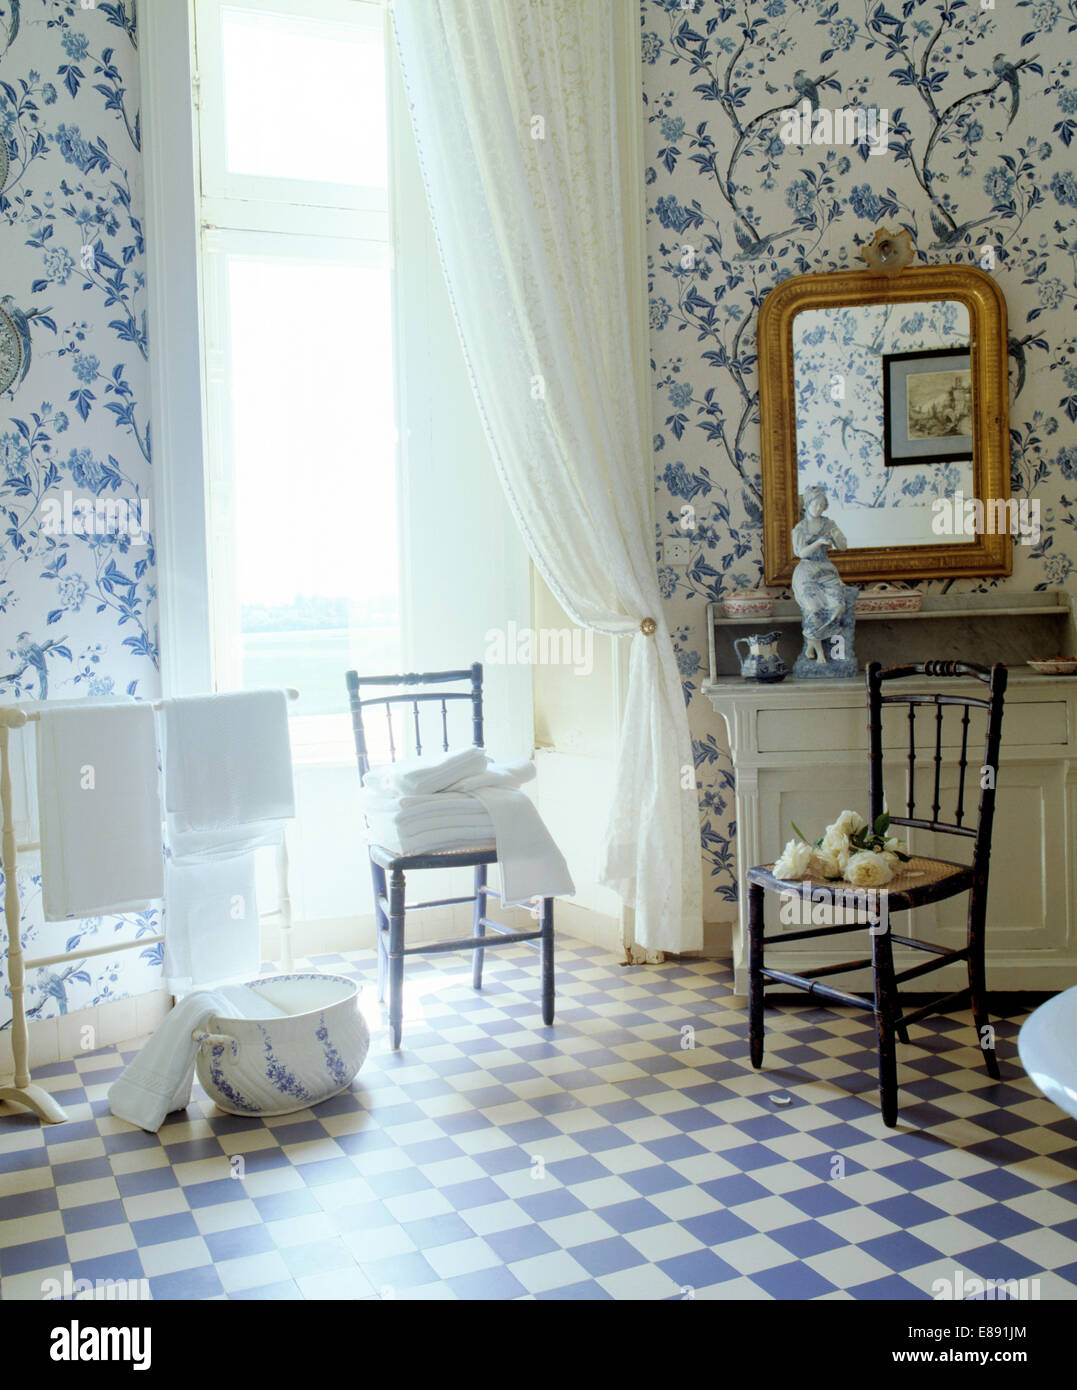 bluewhite vinyl floor in country bathroom with bluewhite floral wallpaper and white voile curtains